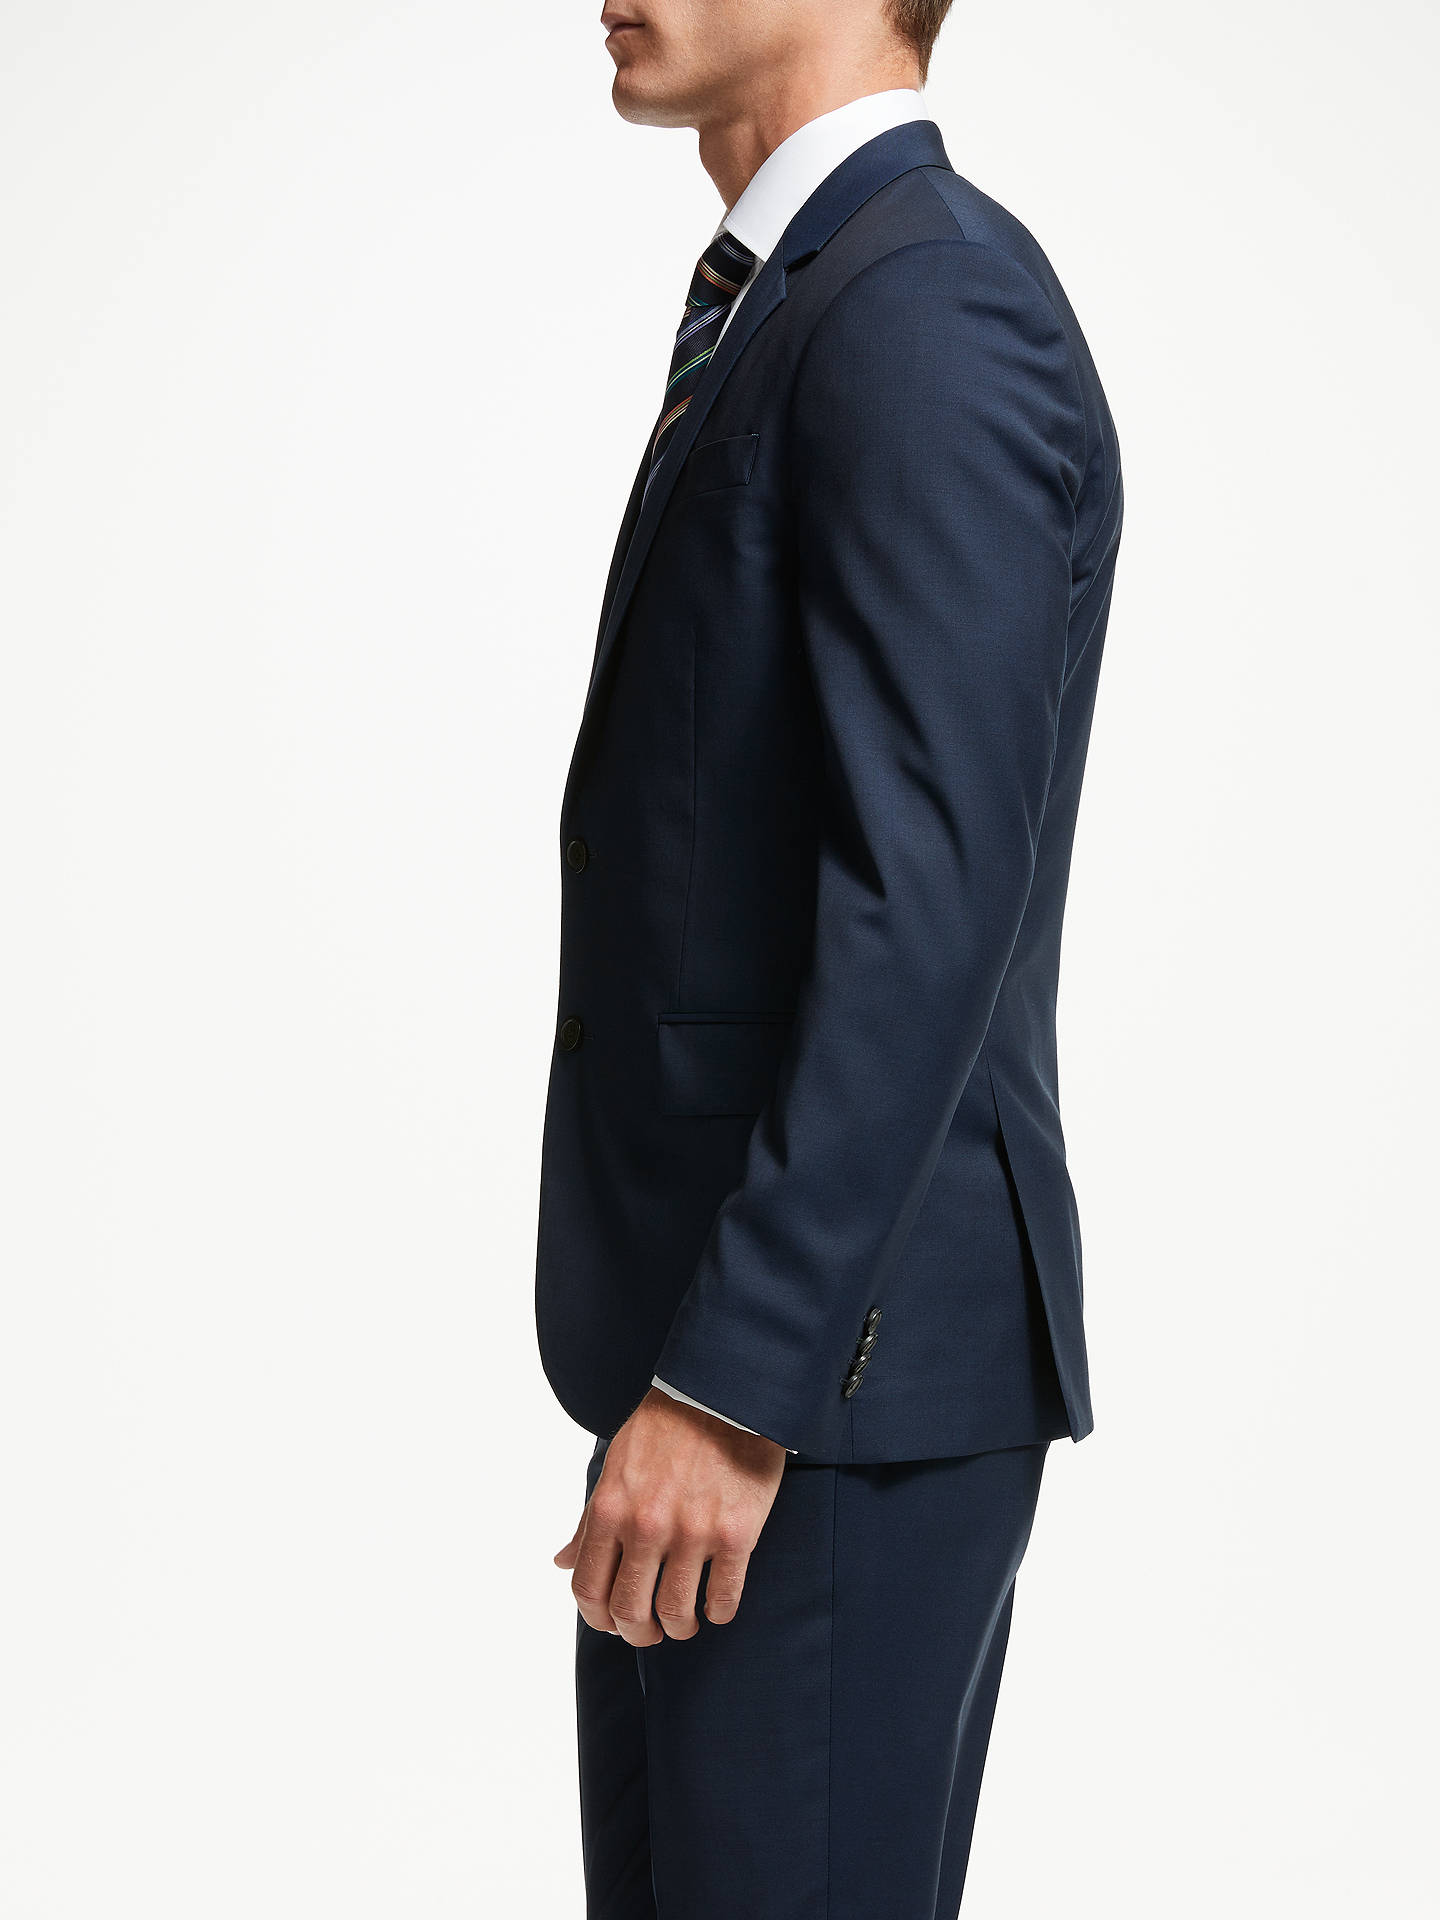 BuyPS Paul Smith Wool Mohair Tailored Fit Suit Jacket, Navy, 36R Online at johnlewis.com